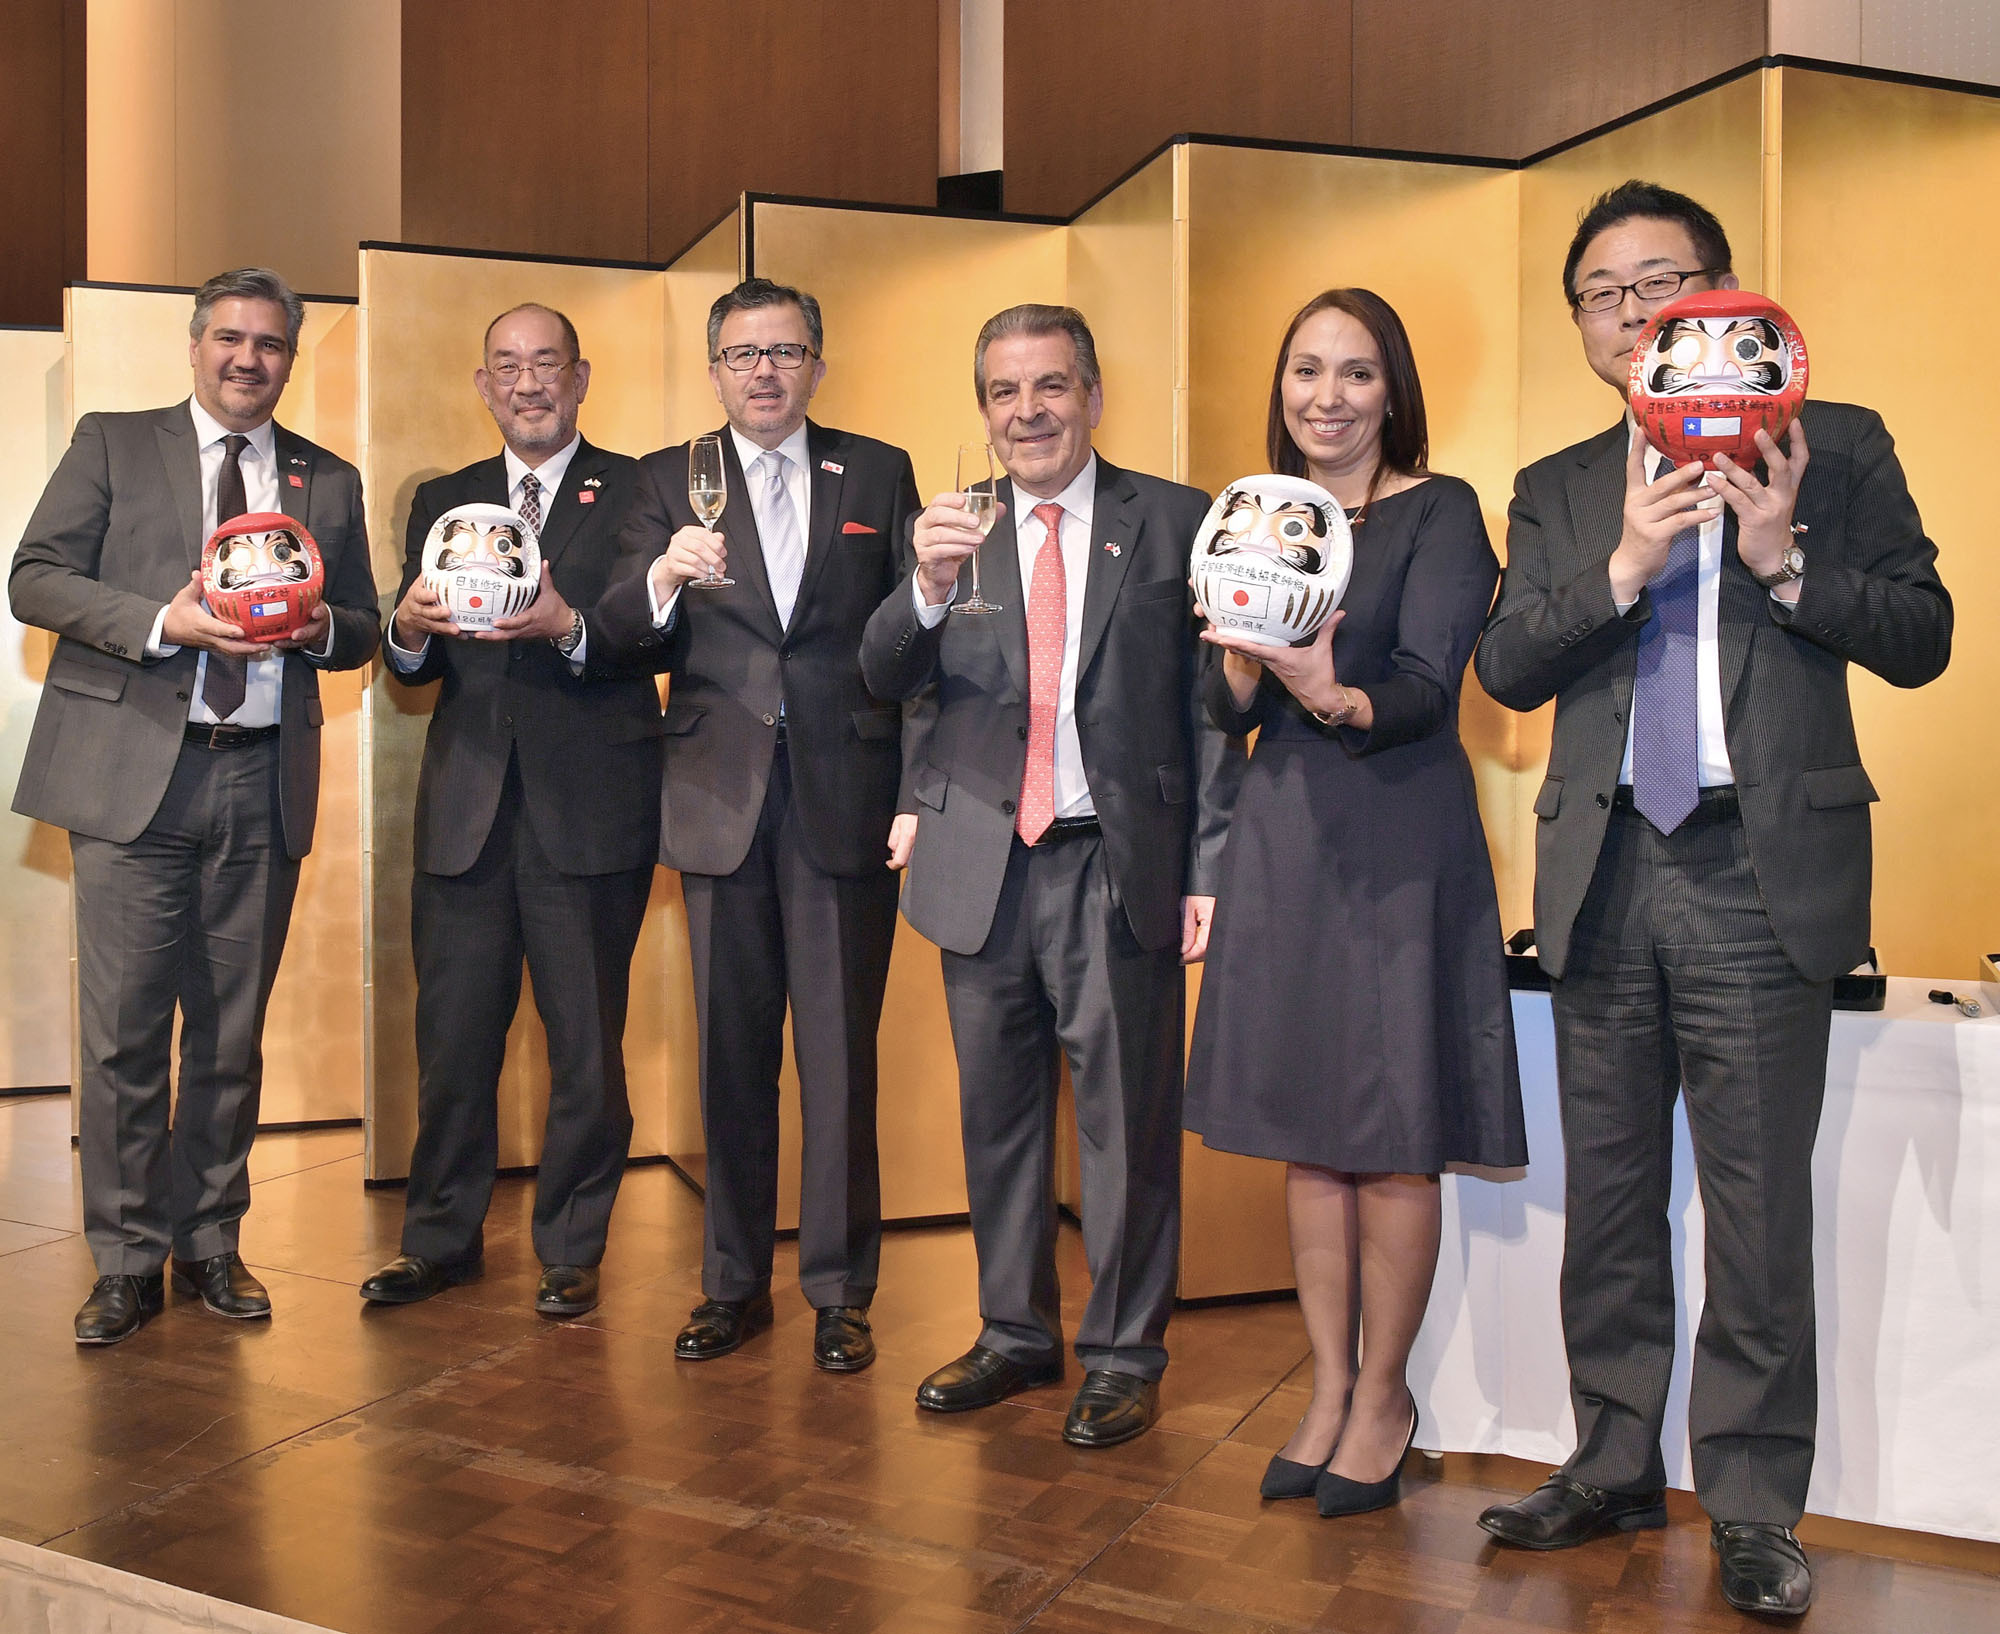 Eduardo Frei, former president of Chile (third from right), poses for a photo with (from left) Alejandro Buvnic, director of ProChile; Naoyoshi Noguchi, executive vice president of JETRO; Gustavo Ayares, ambassador of Chile; Paulina Nazal, vice minister of commerce; and Kazuhiko Koshikawa, executive senior vice president of JICA, during a dinner to mark the 120th anniversary of the establishment of diplomatic relations between Japan and Chile at Hotel Conrad, Tokyo on Oct. 18. |   YOSHIAKI MIURA